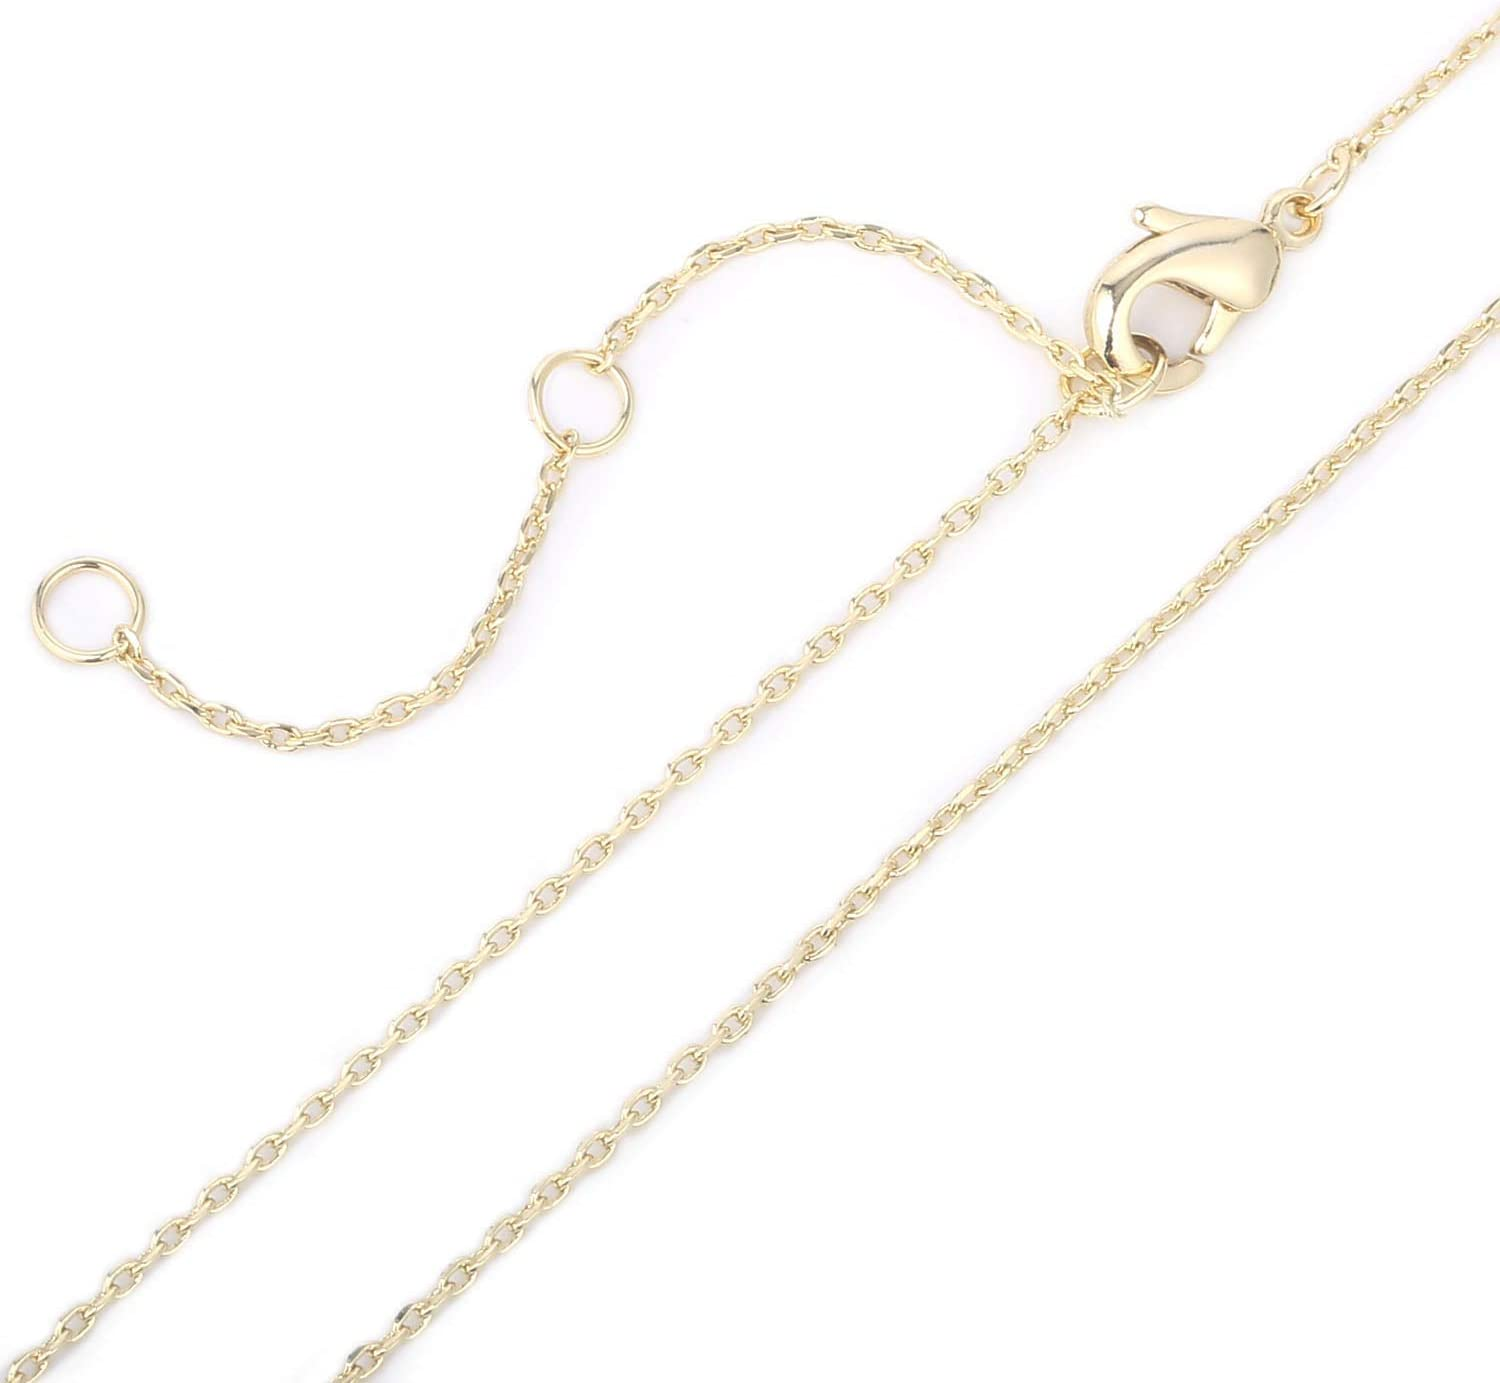 DLNKFD10RG Men Women 14K Rose Gold Chain 1mm Cable Chain Necklace